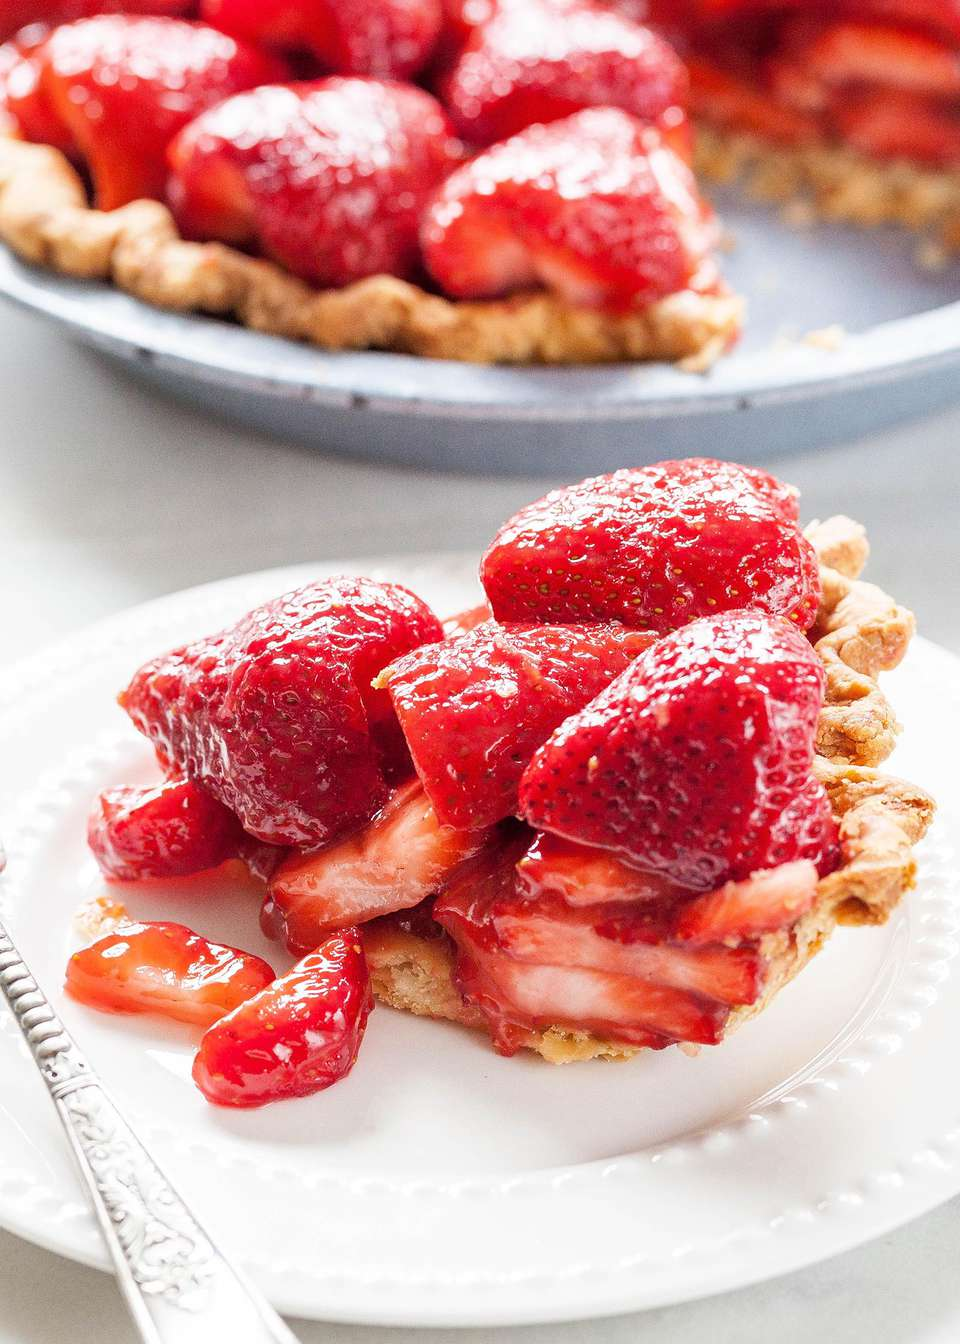 A slice of easy Strawberry Pie on a plate with the rest of the pie in the background